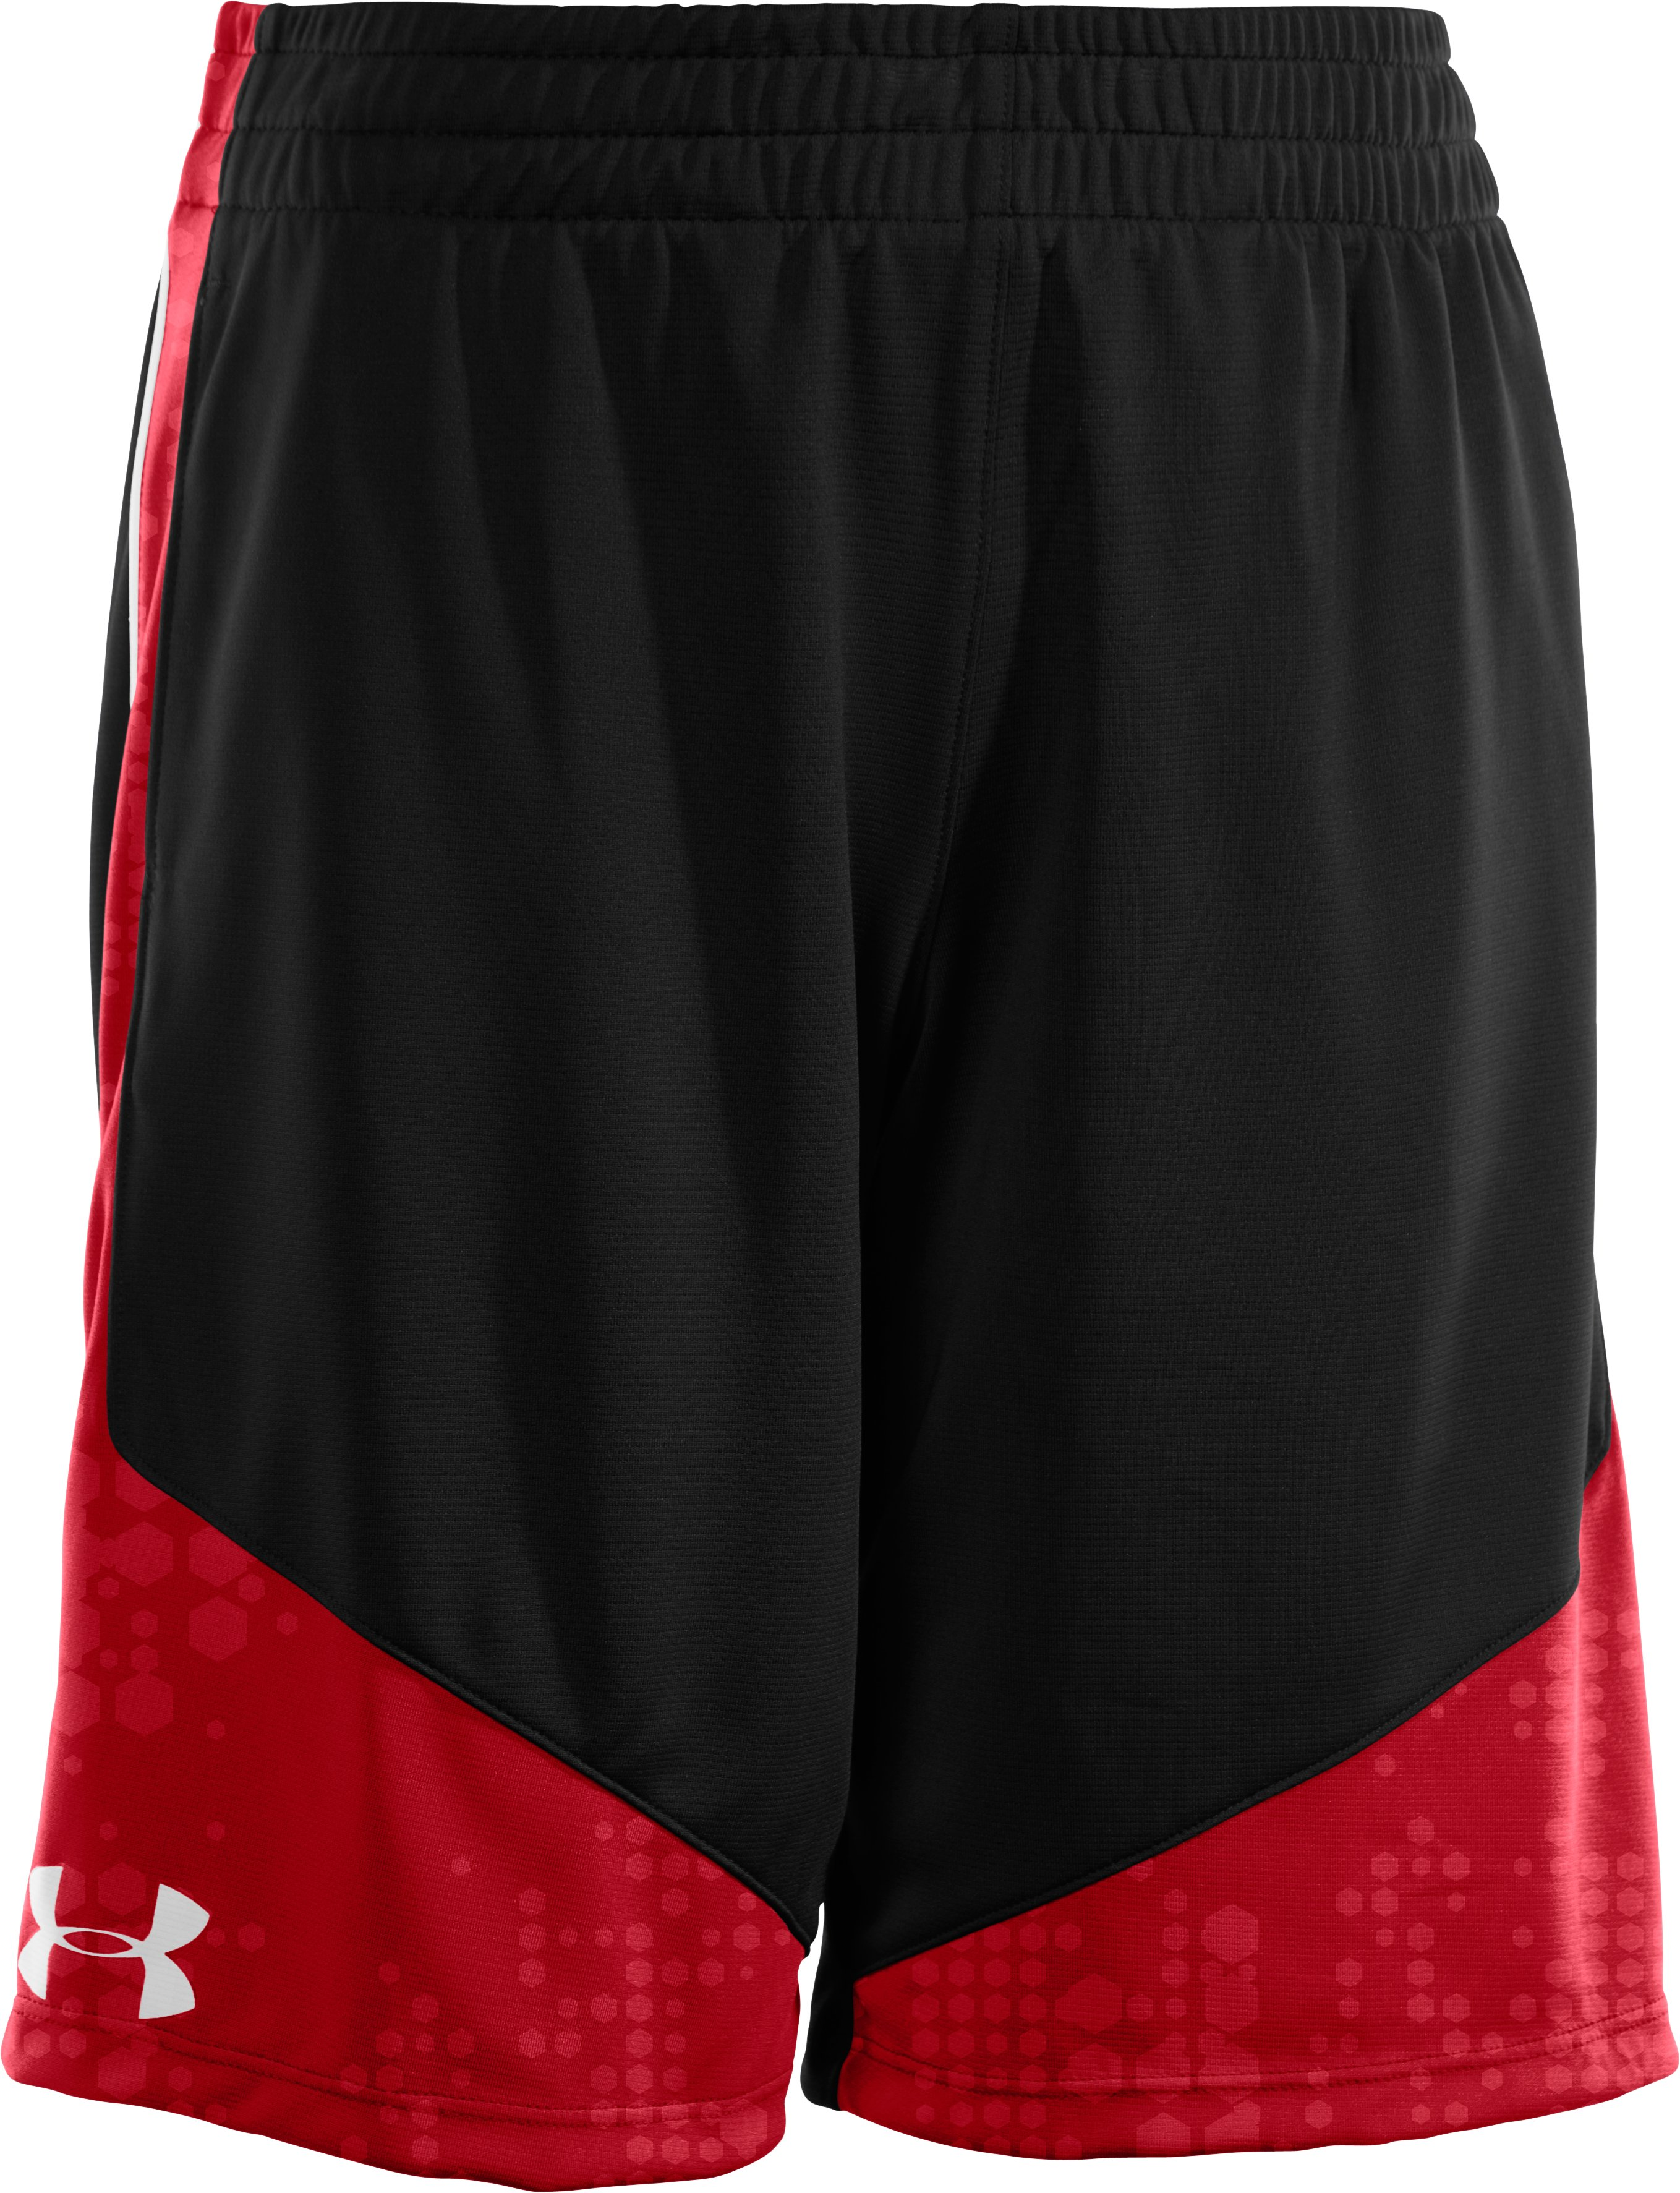 "Boys' UA Flare II 9"" Shorts, Black"